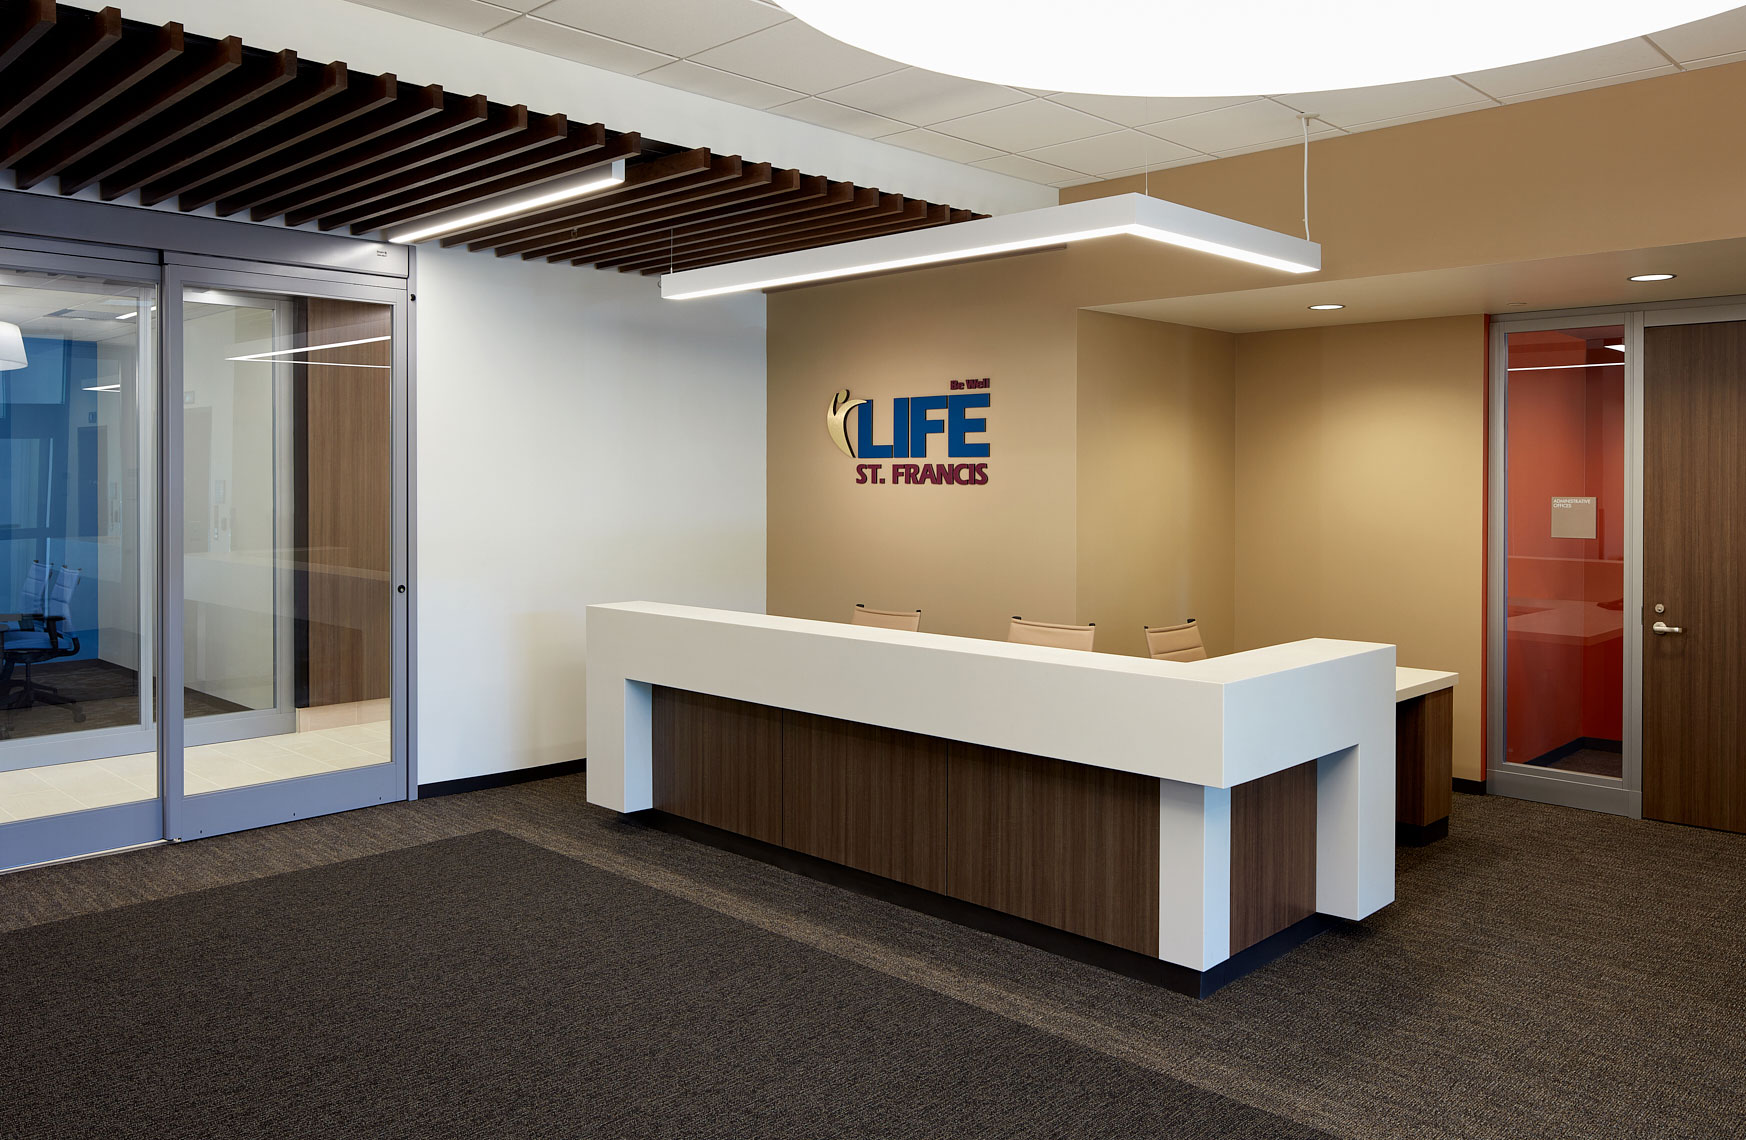 LIFE - St. Francis - Entrance